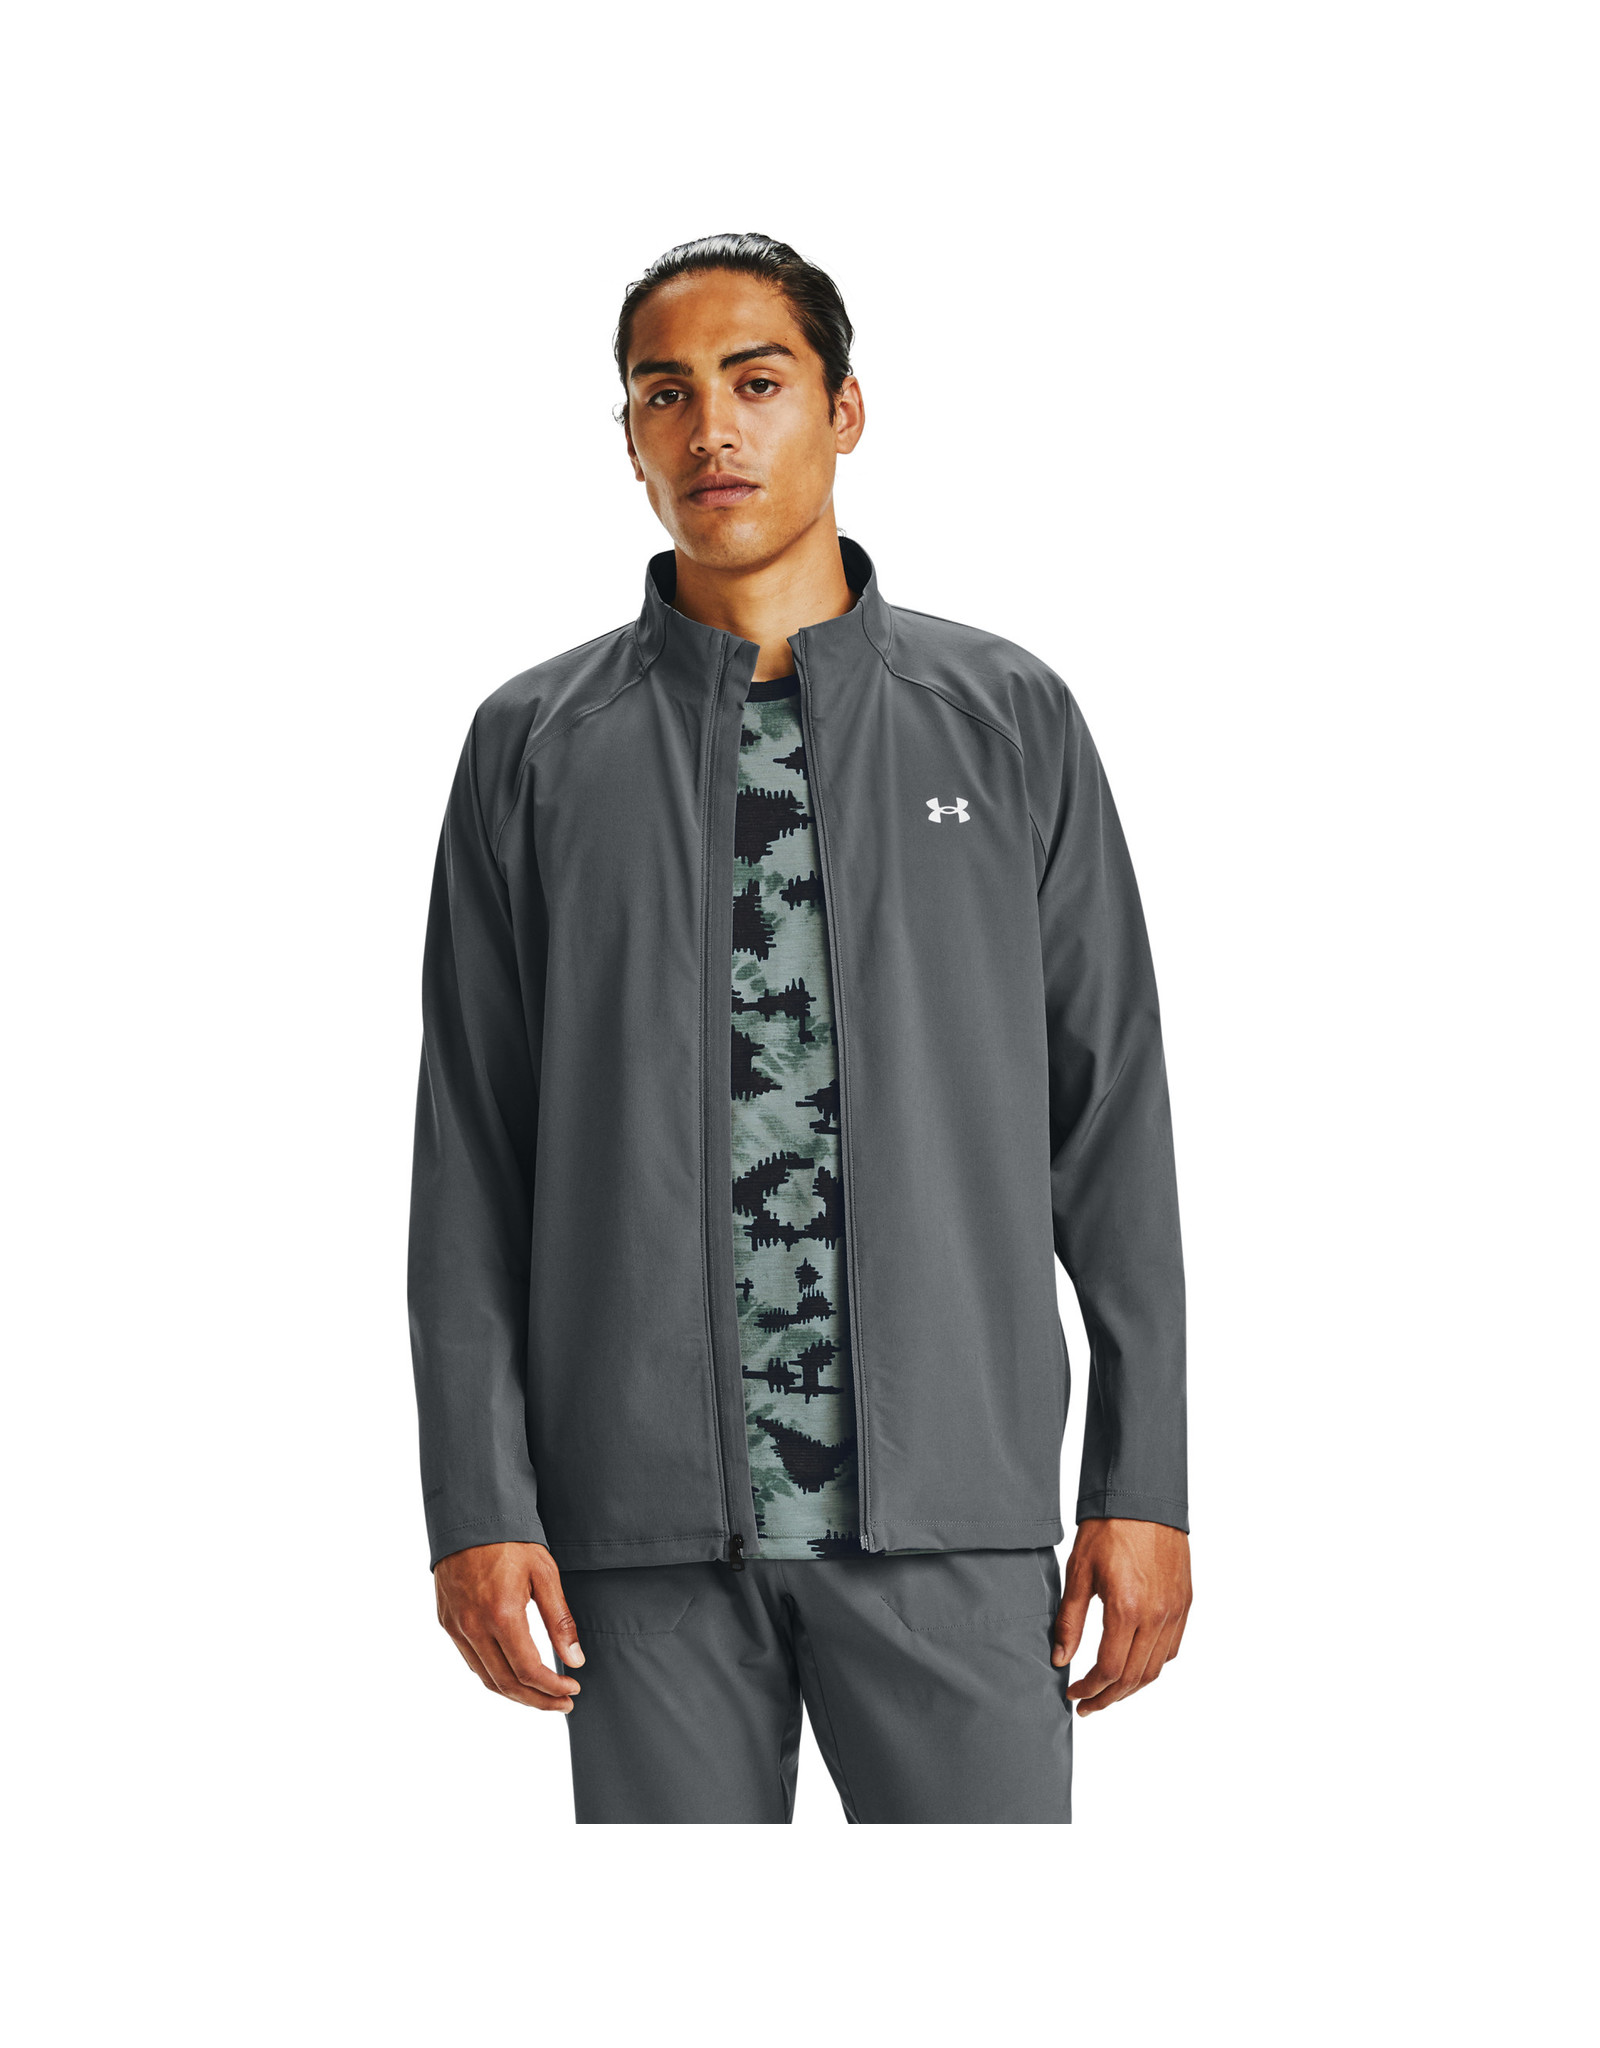 Under Armour Storm launch jacket 3.0 - Gray